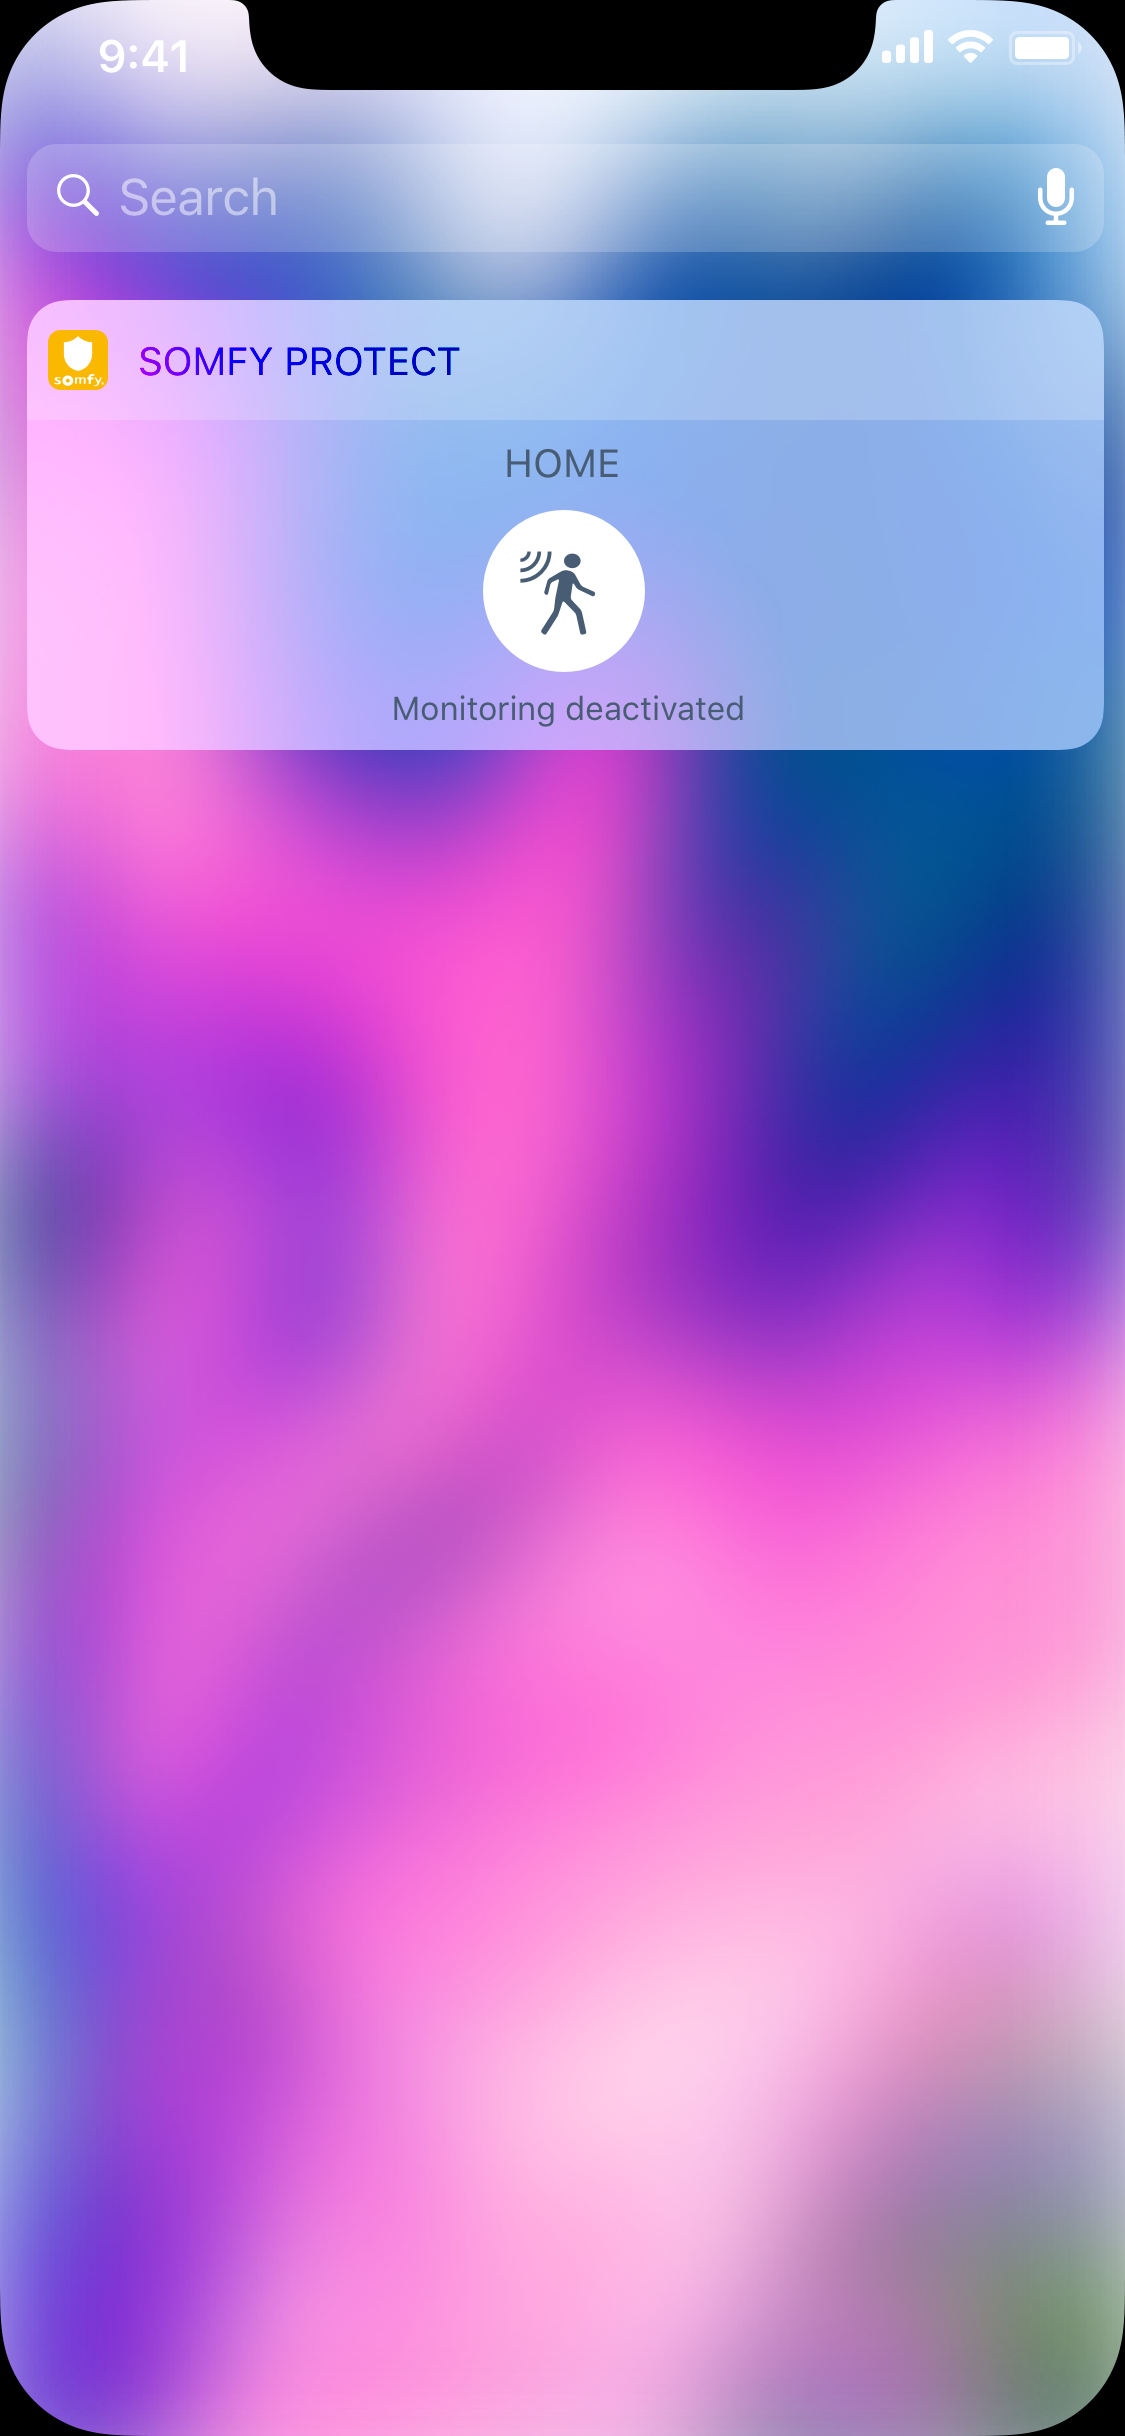 IOS_Widget-cam_only-deactivated.png